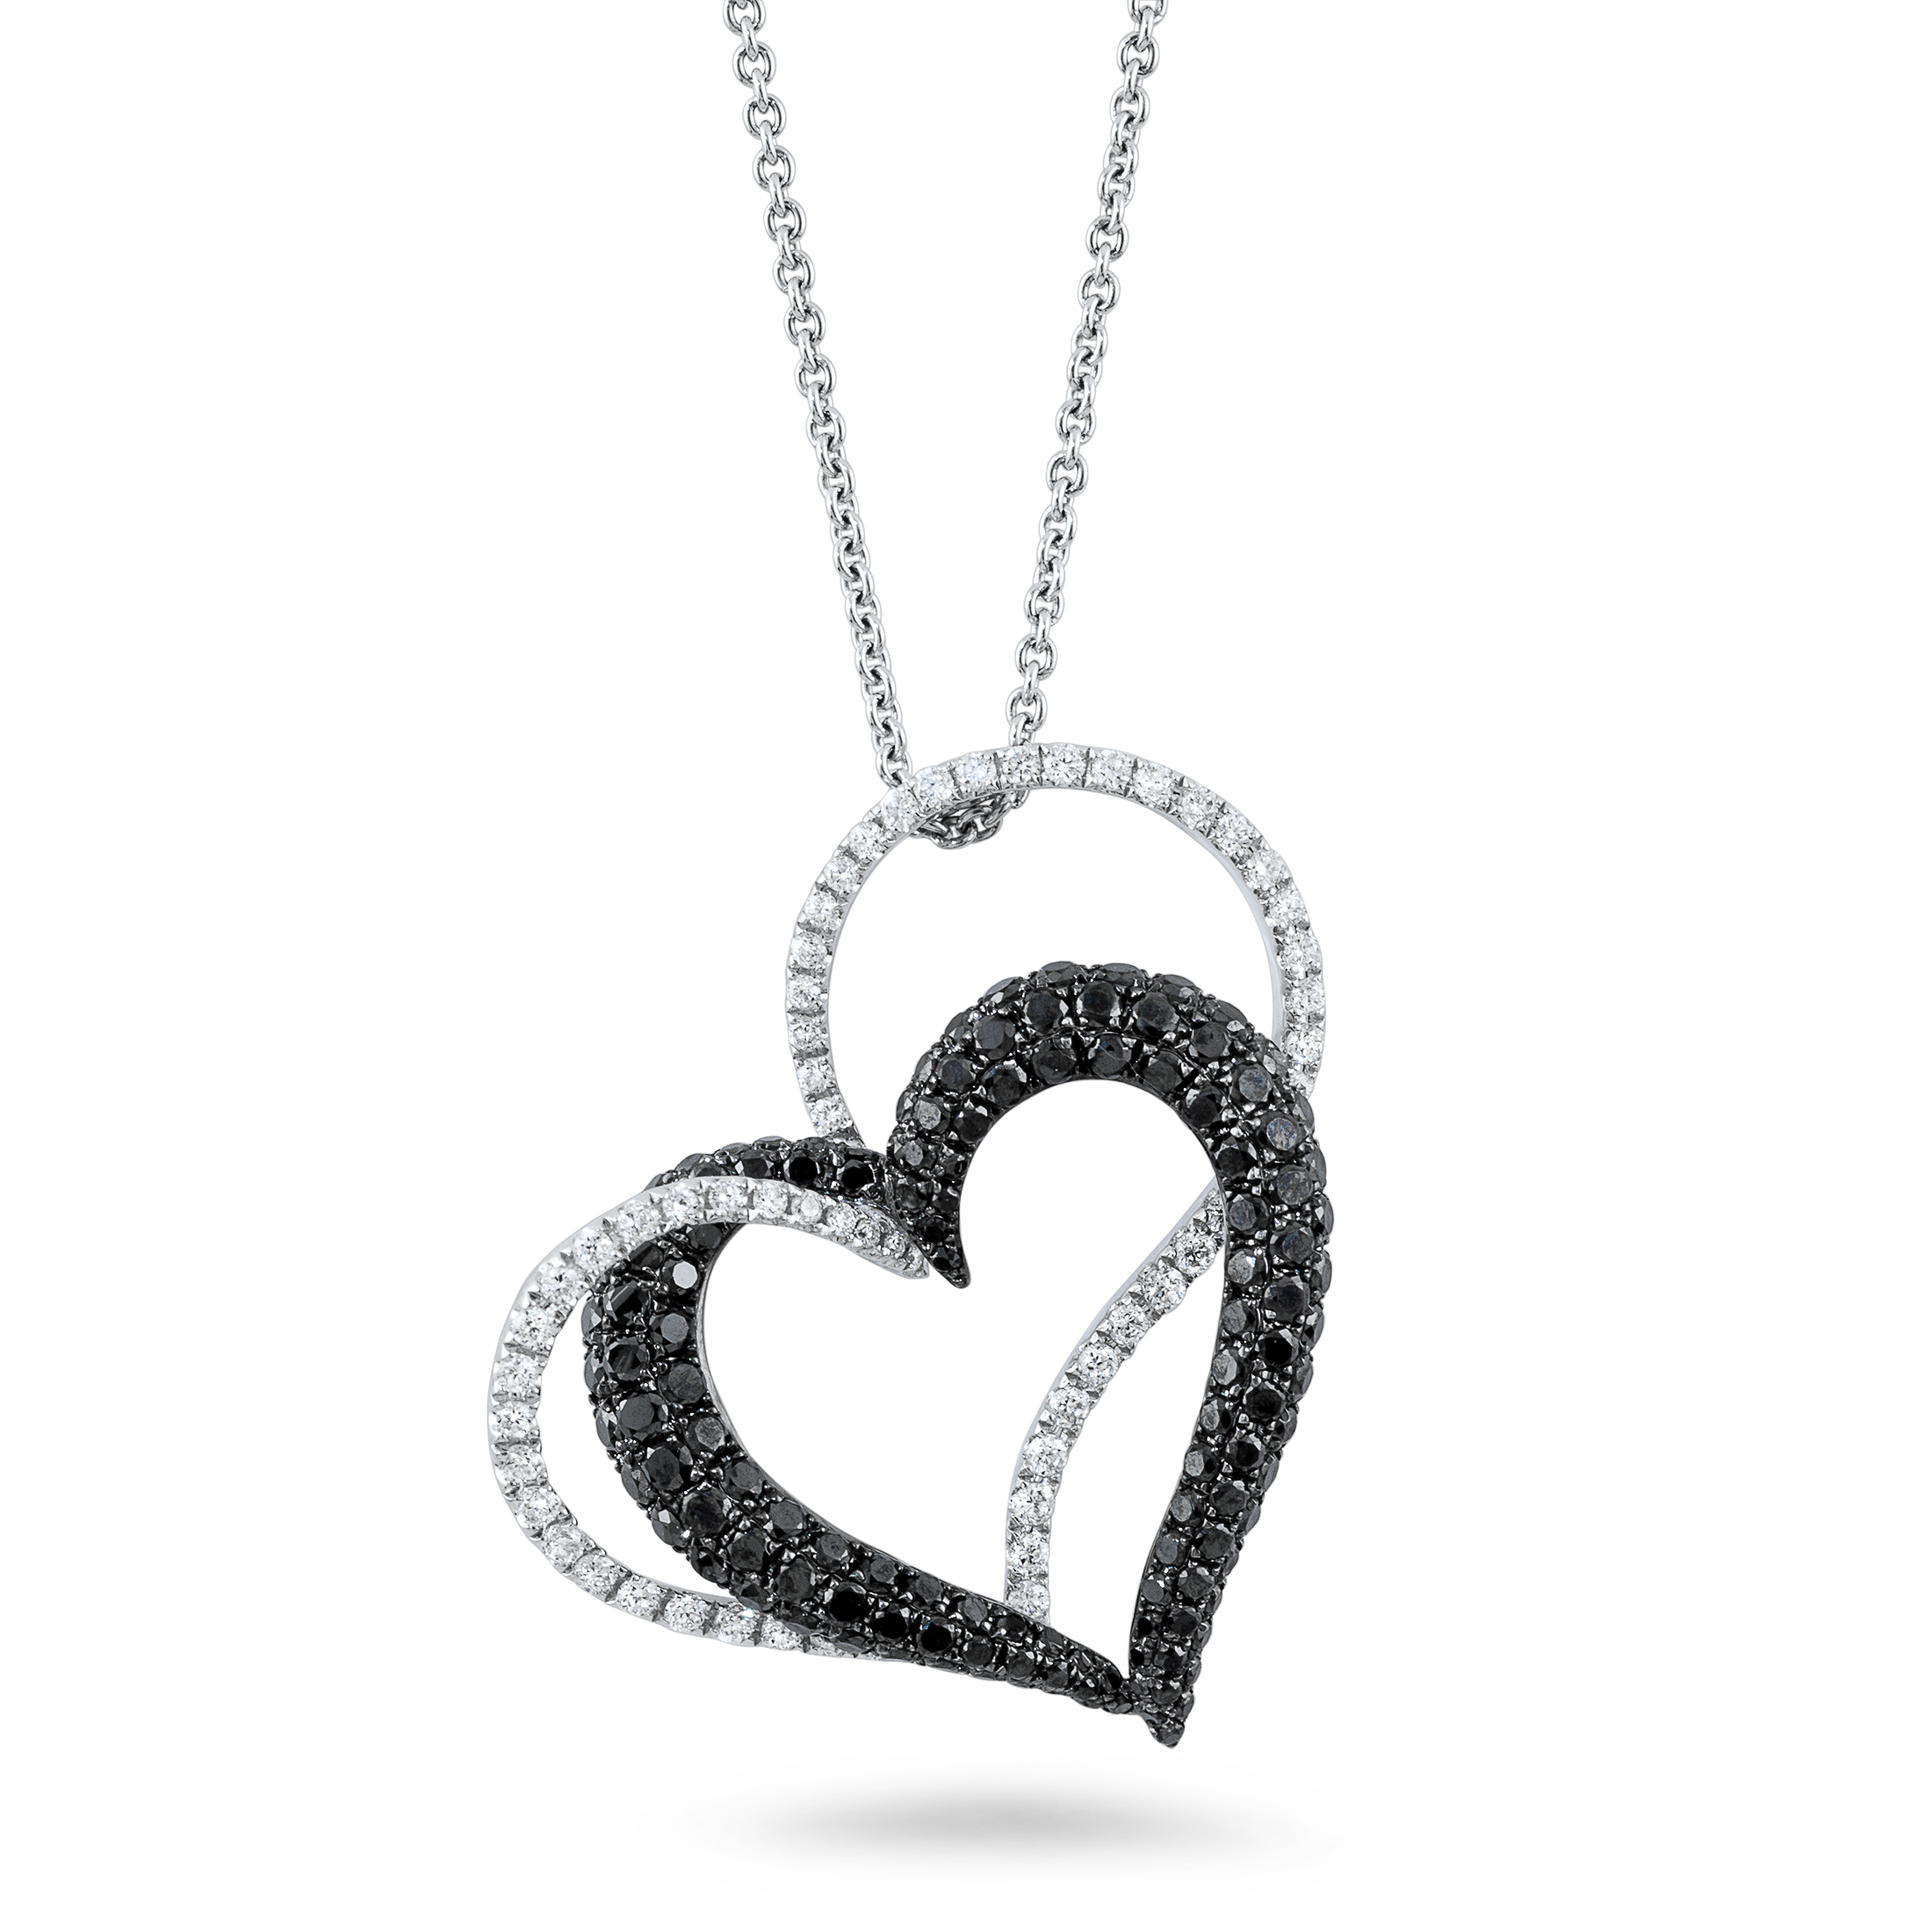 Locket PNG Images Transparent Free Download.